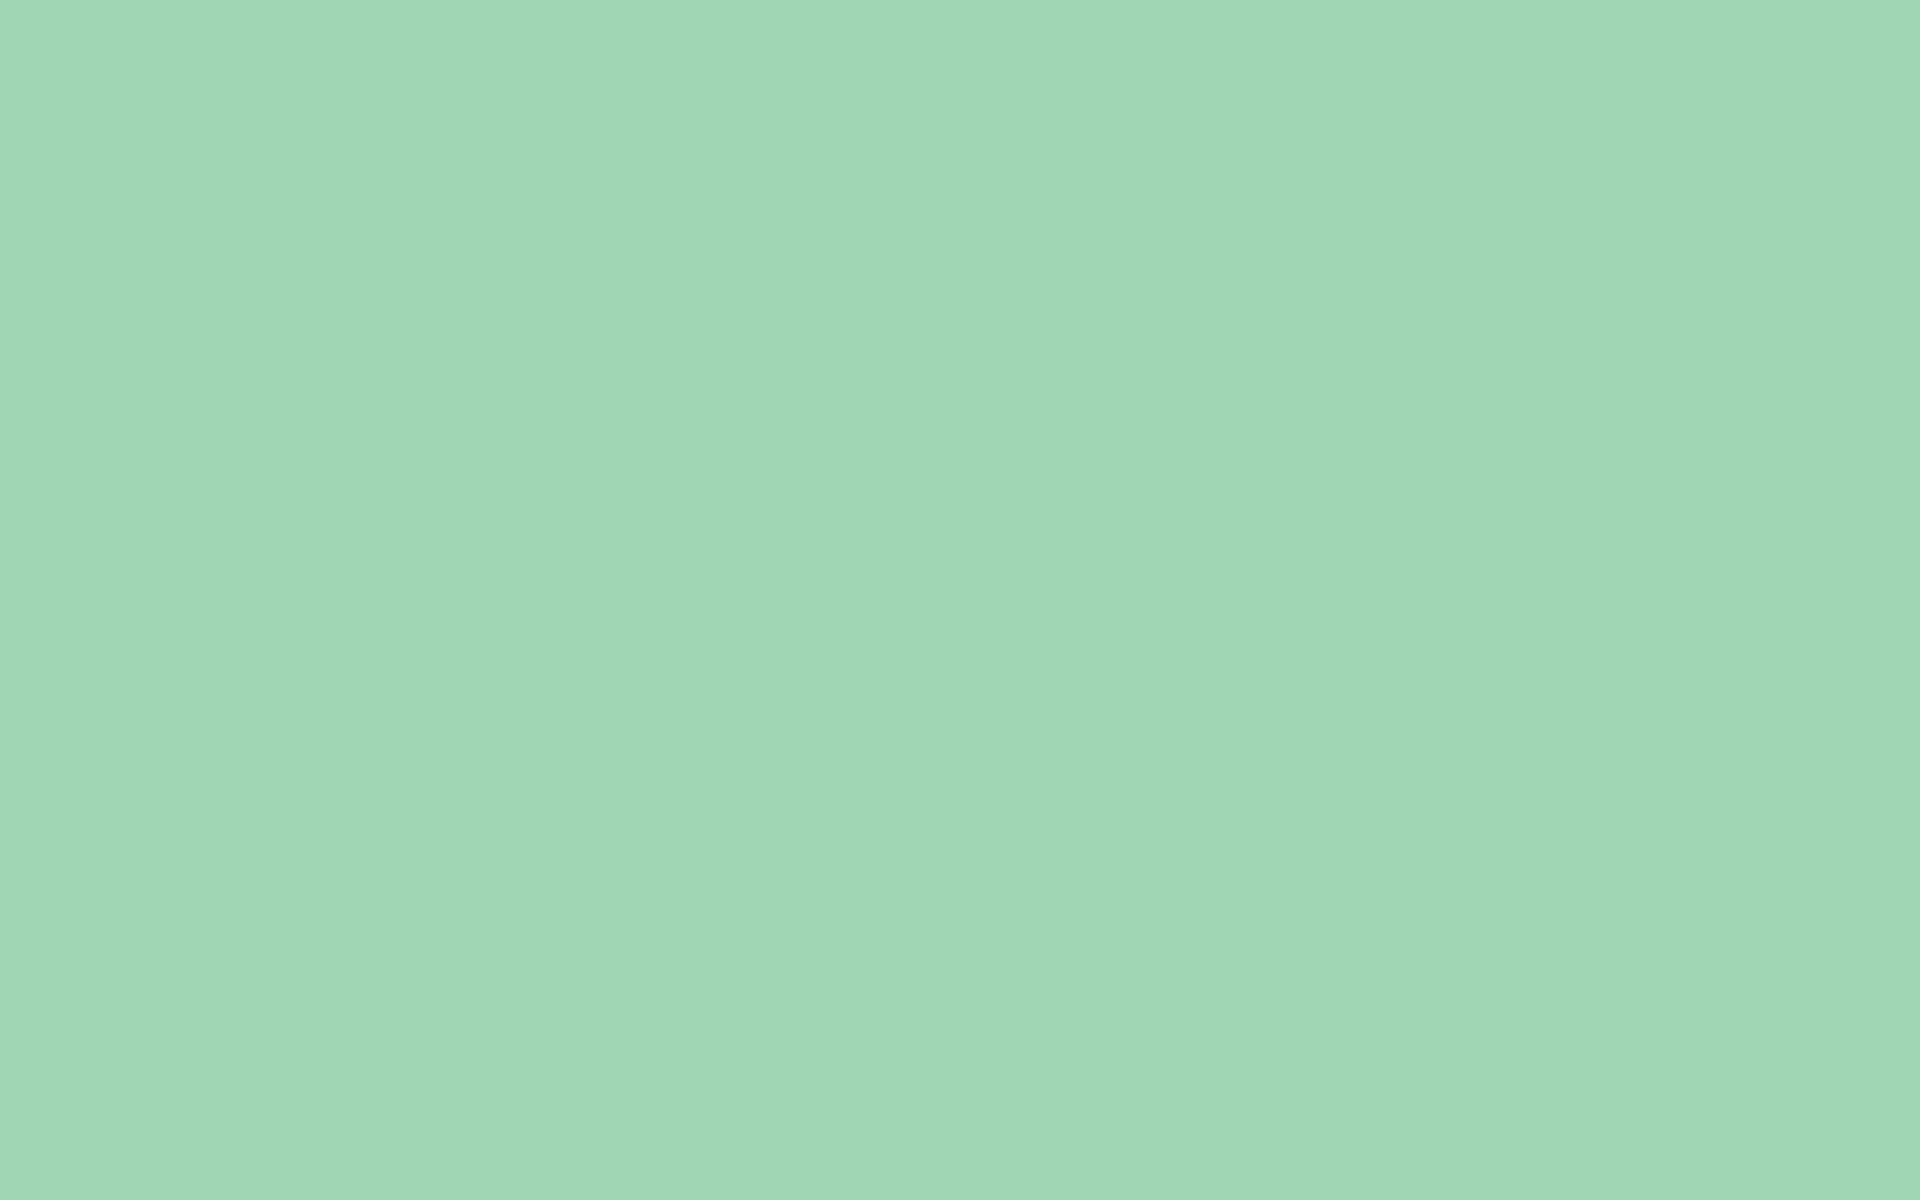 1920x1200 Turquoise Green Solid Color Background